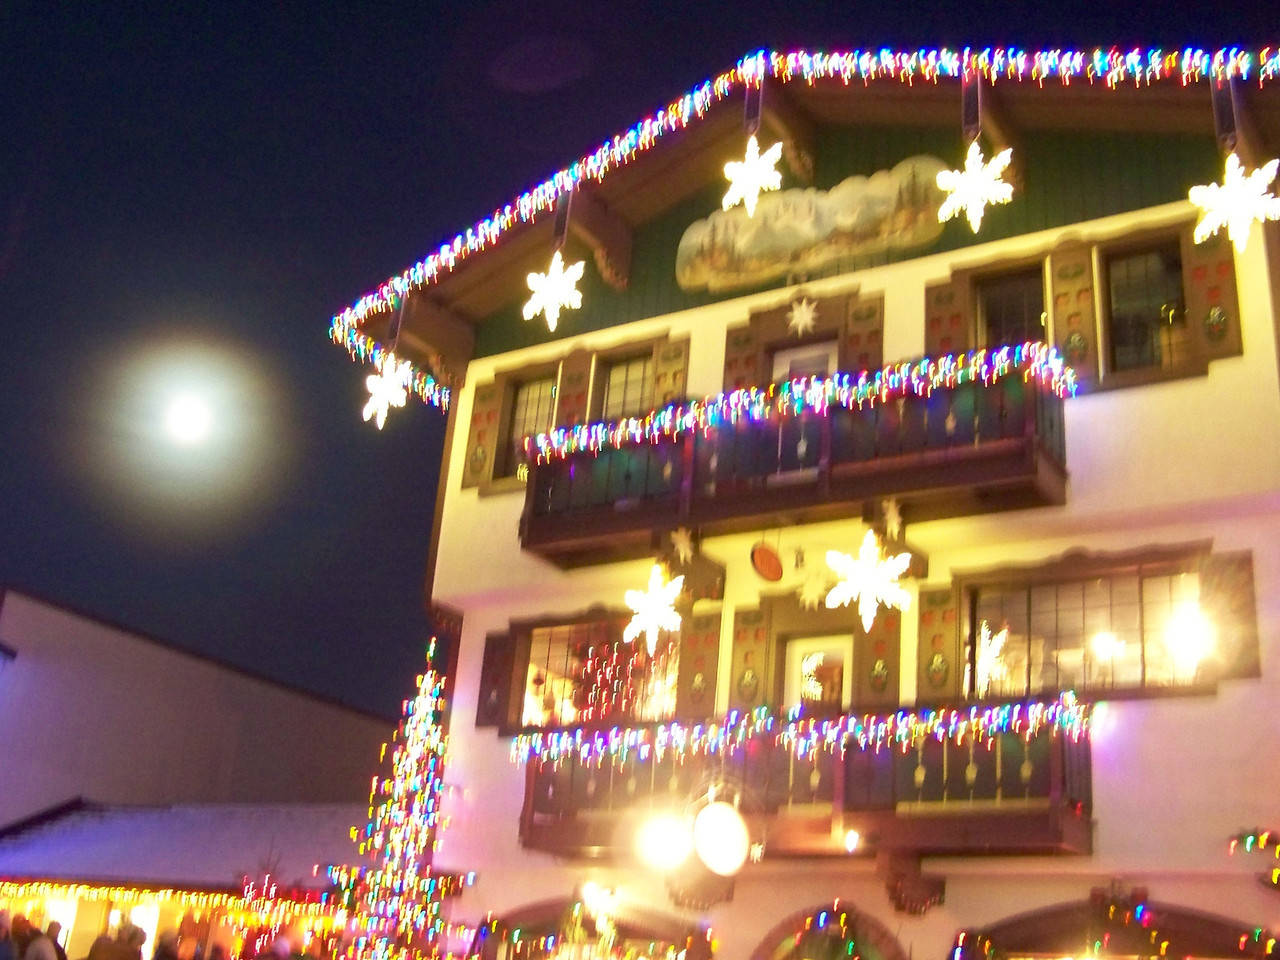 """The moon was nearly full, and complemented the Christmas lights nicely.  The cloudless sky meant that the temperature really plunged after dark.  I never did see an exact temperature, but it must've been in the 20s, at least. [Leavenworth, WA - December 2013 - <b><a target=""""_new"""" href=""""http://youtu.be/NqCqDCOY_tc"""">Watch my video here</a></b>]"""